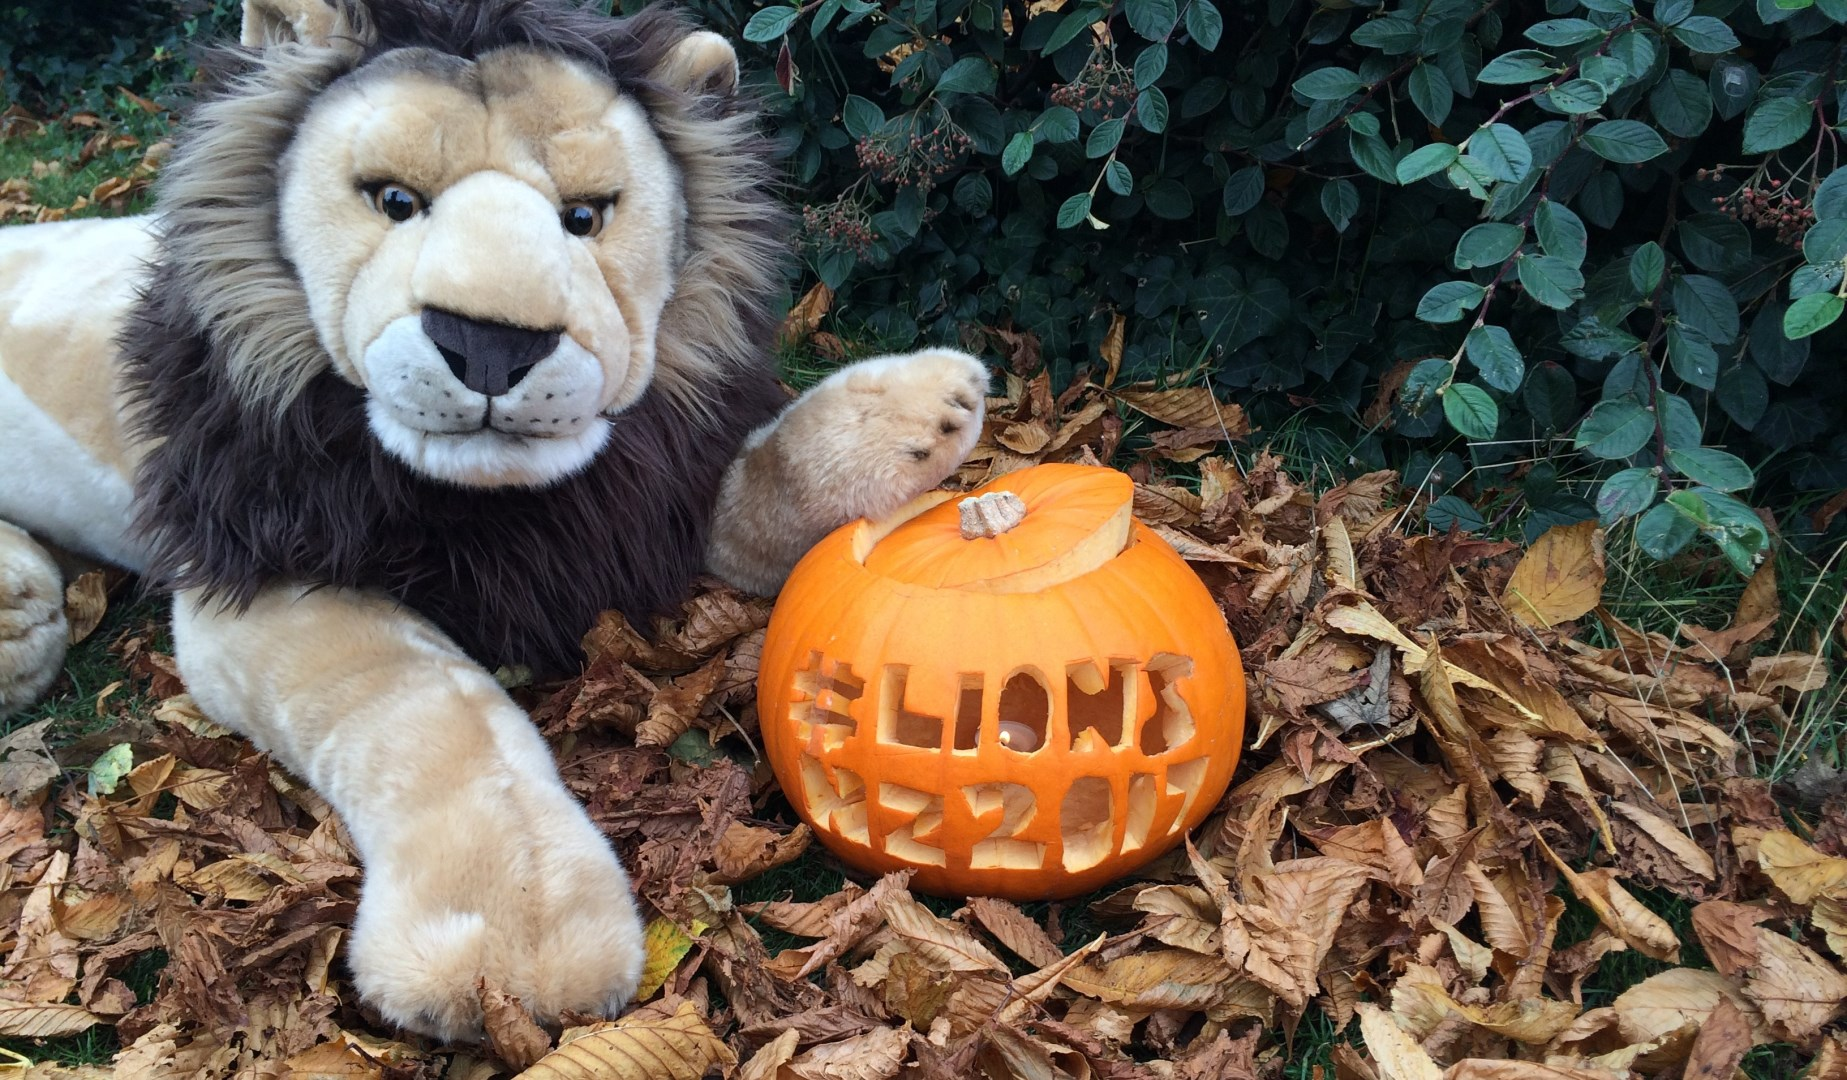 Carve a Lions pumpkin and win an official backpack!